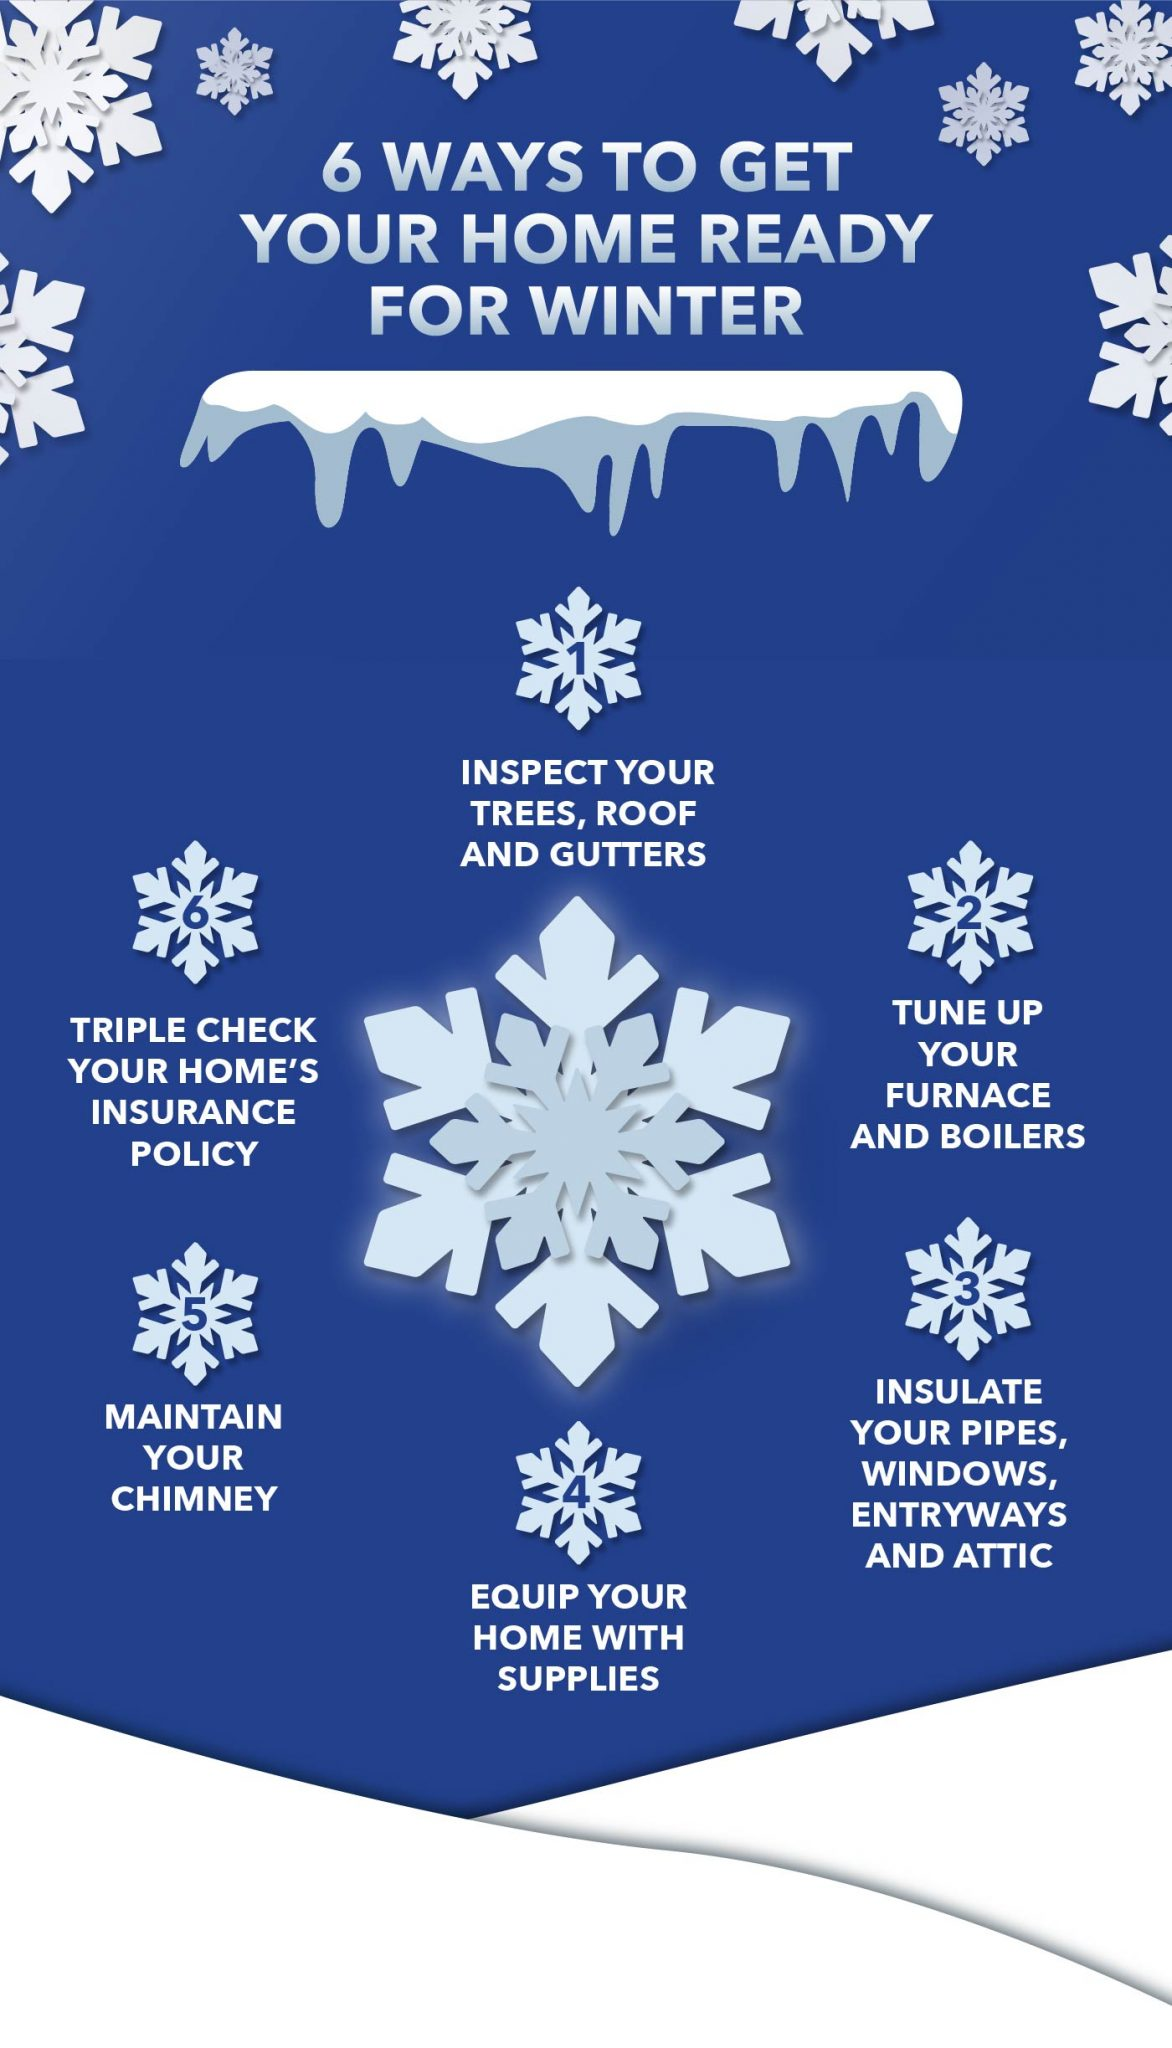 winterize-your-home-tips-infographic